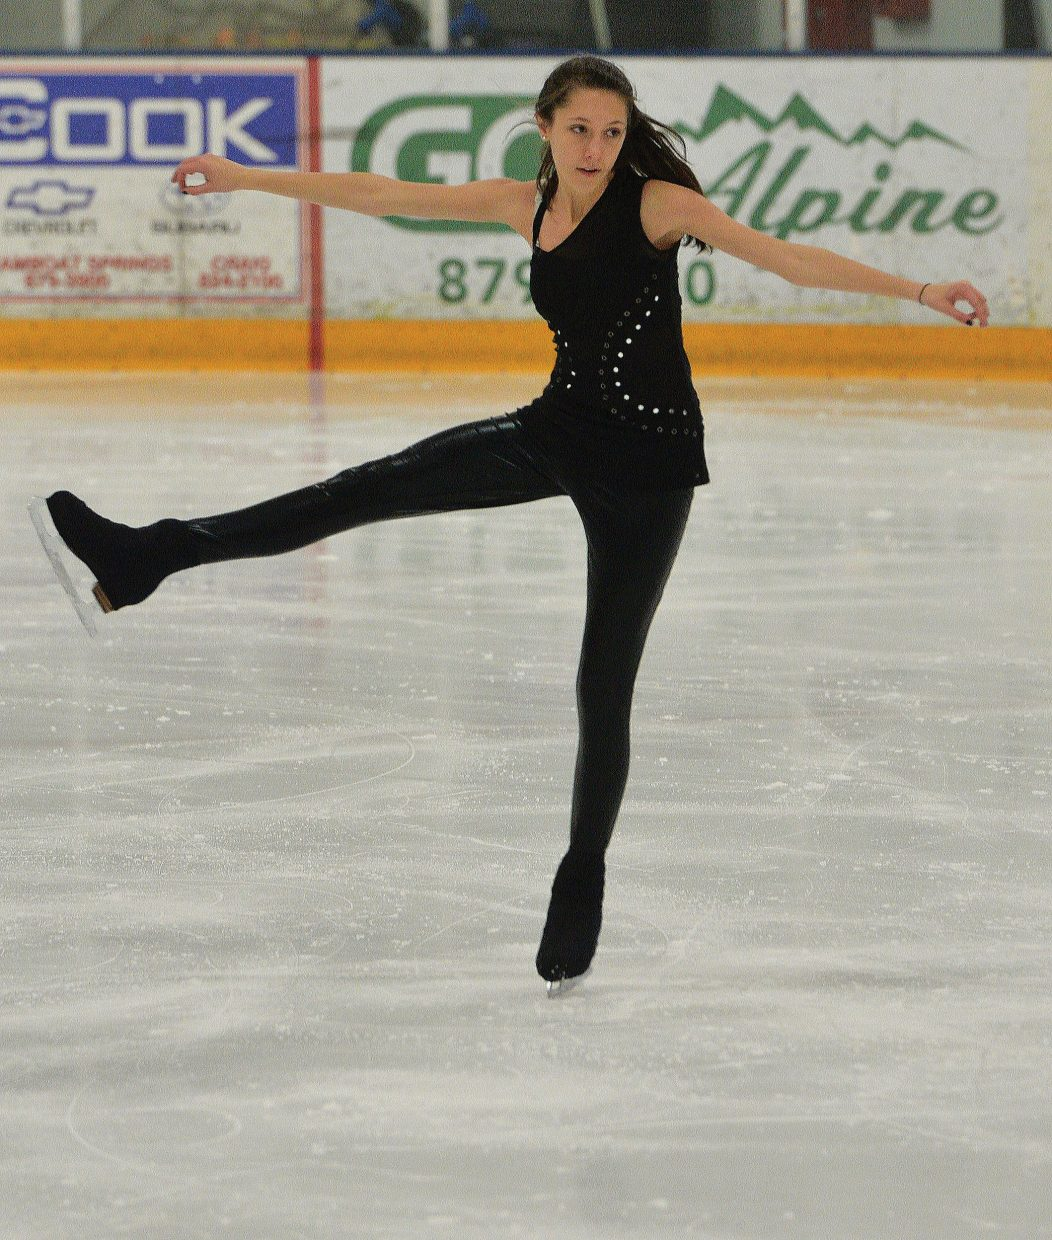 """Steamboat Springs Figure Skating Club member Gillian Cook performs to """"Rolling in the Deep"""" during a rehearsal for Sunday's Spring Show. The show is scheduled to begin at 4:30 p.m. at the Howelsen Hill Ice Arena. Admission is free, but the figure skating club will be asking for donations to help support its programs."""